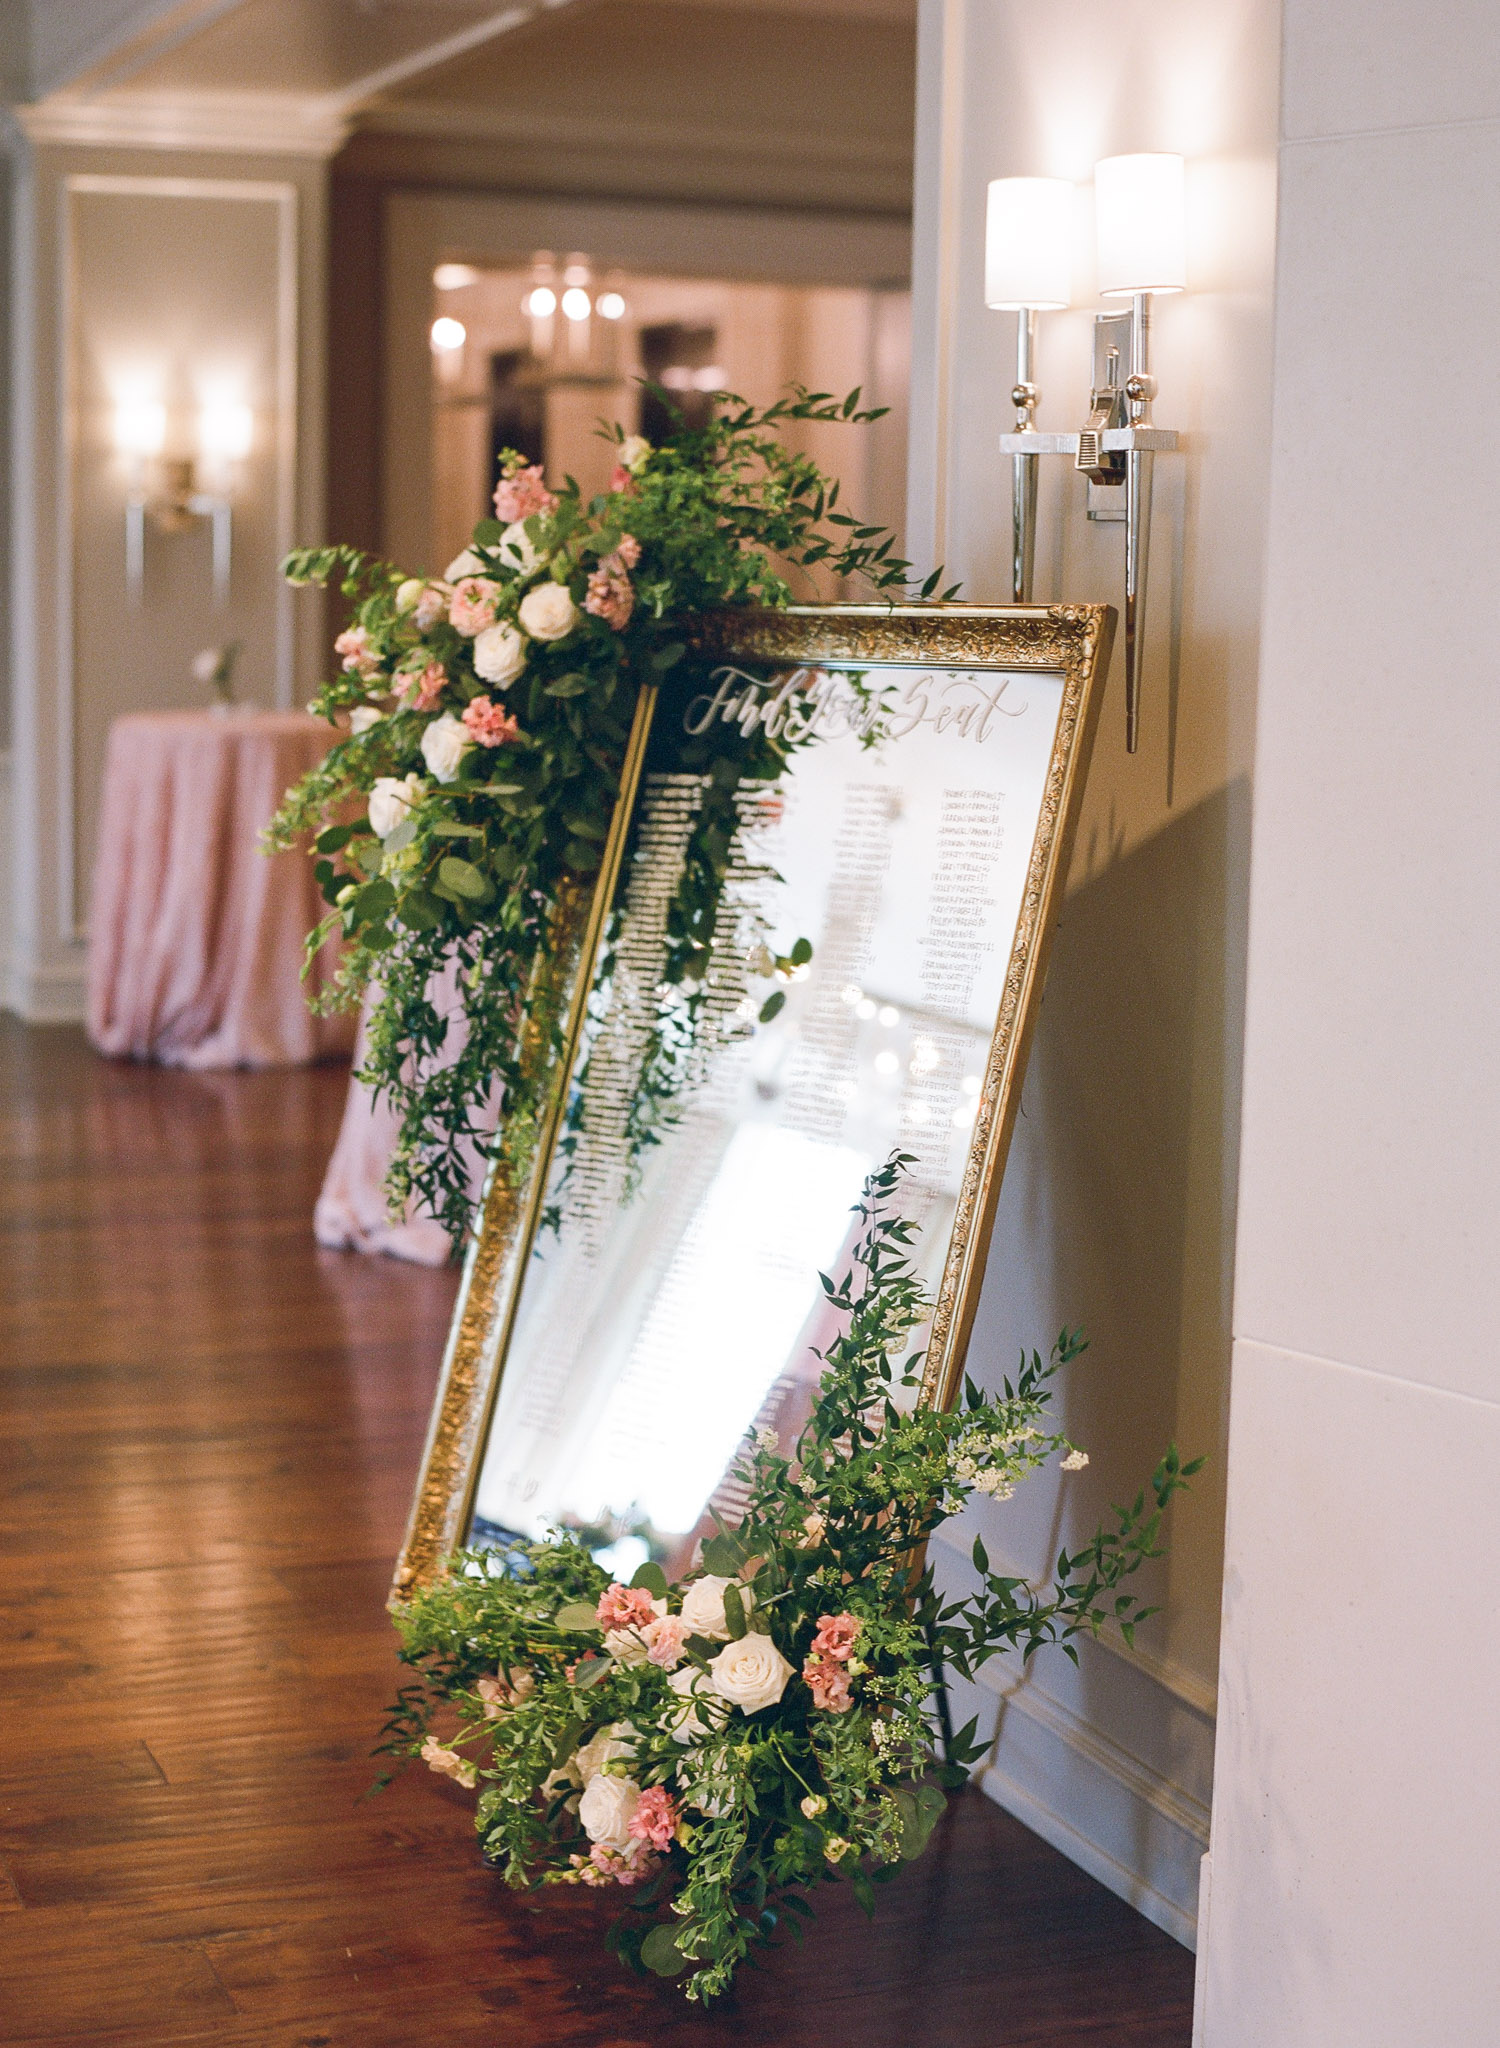 Charleston-Wedding-Hotel-Bennett-96.jpg